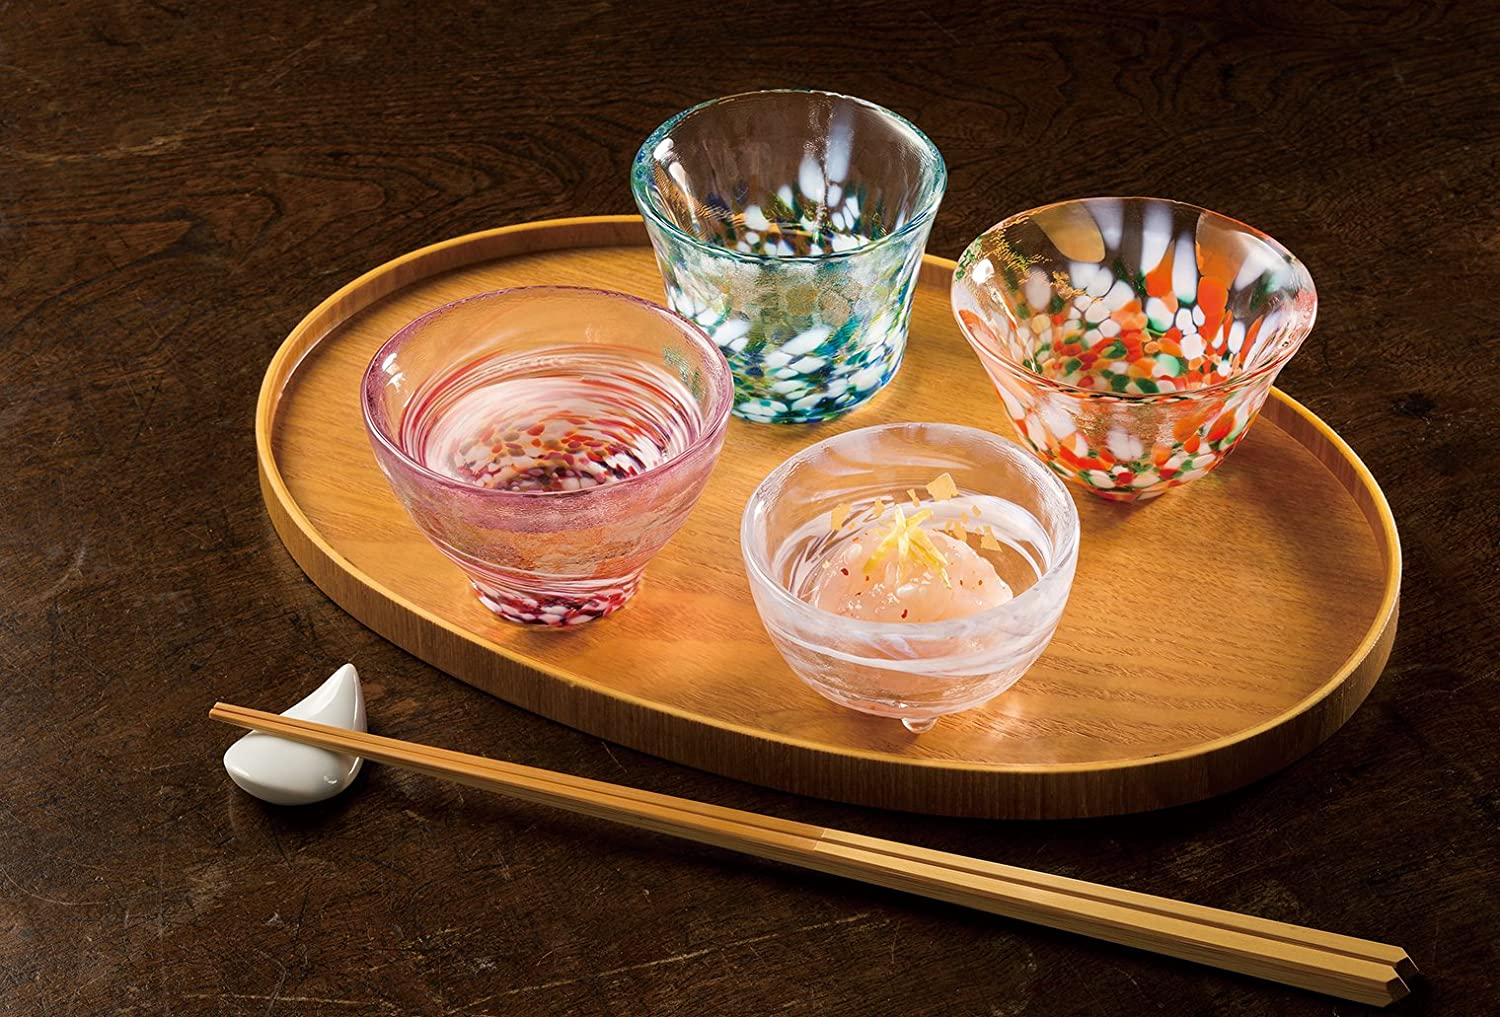 Tsugaru Biidoro with a chest of sake for four seasons